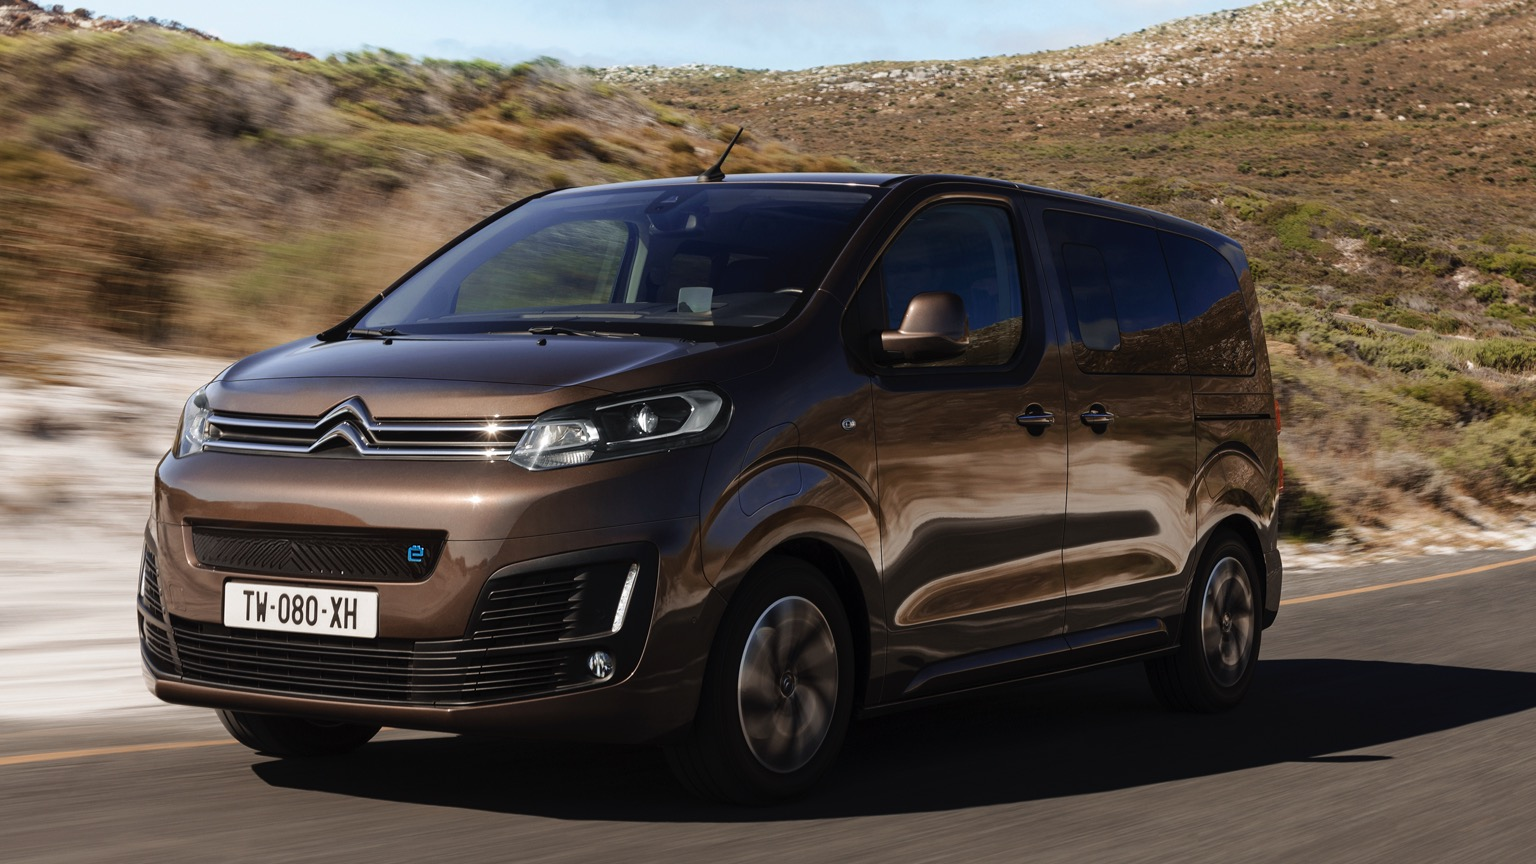 Citroen e-SpaceTourer XL 50 kWh (2020)